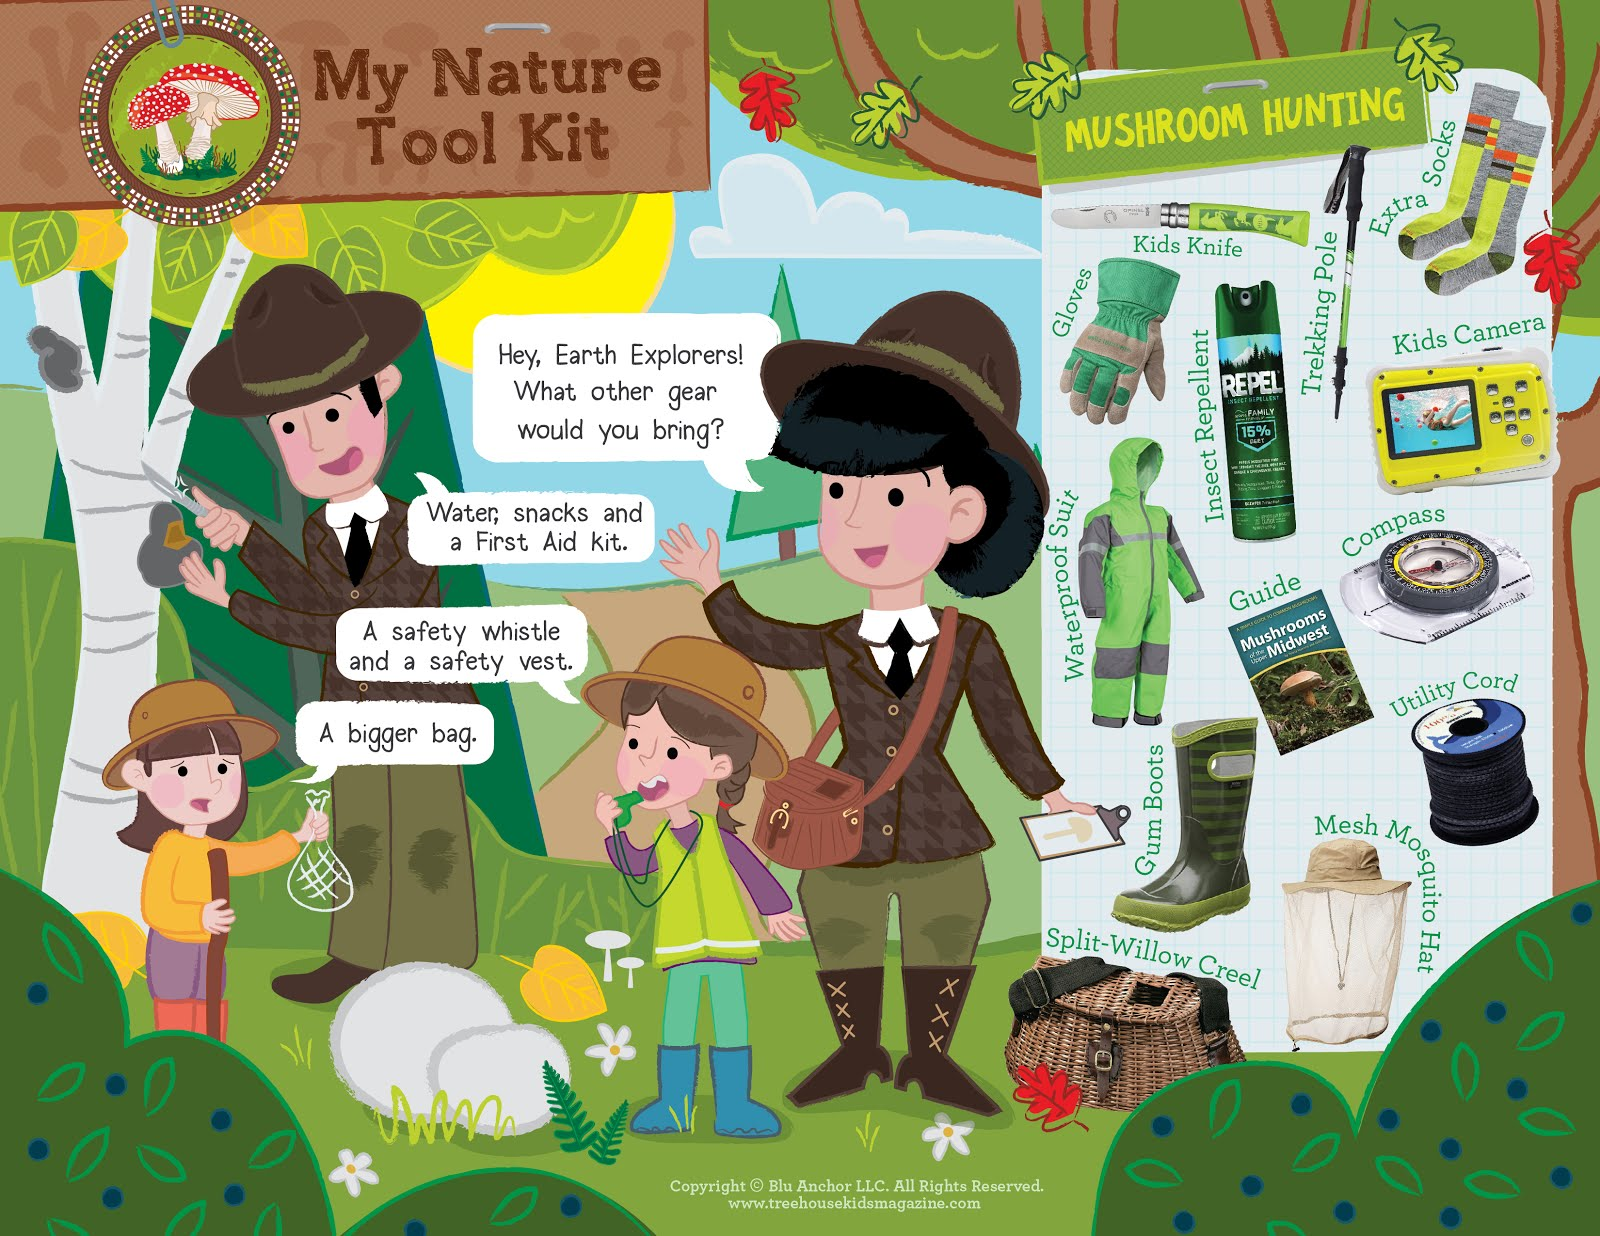 Treehouse Magazine The Magical And Mysterious Mushroom